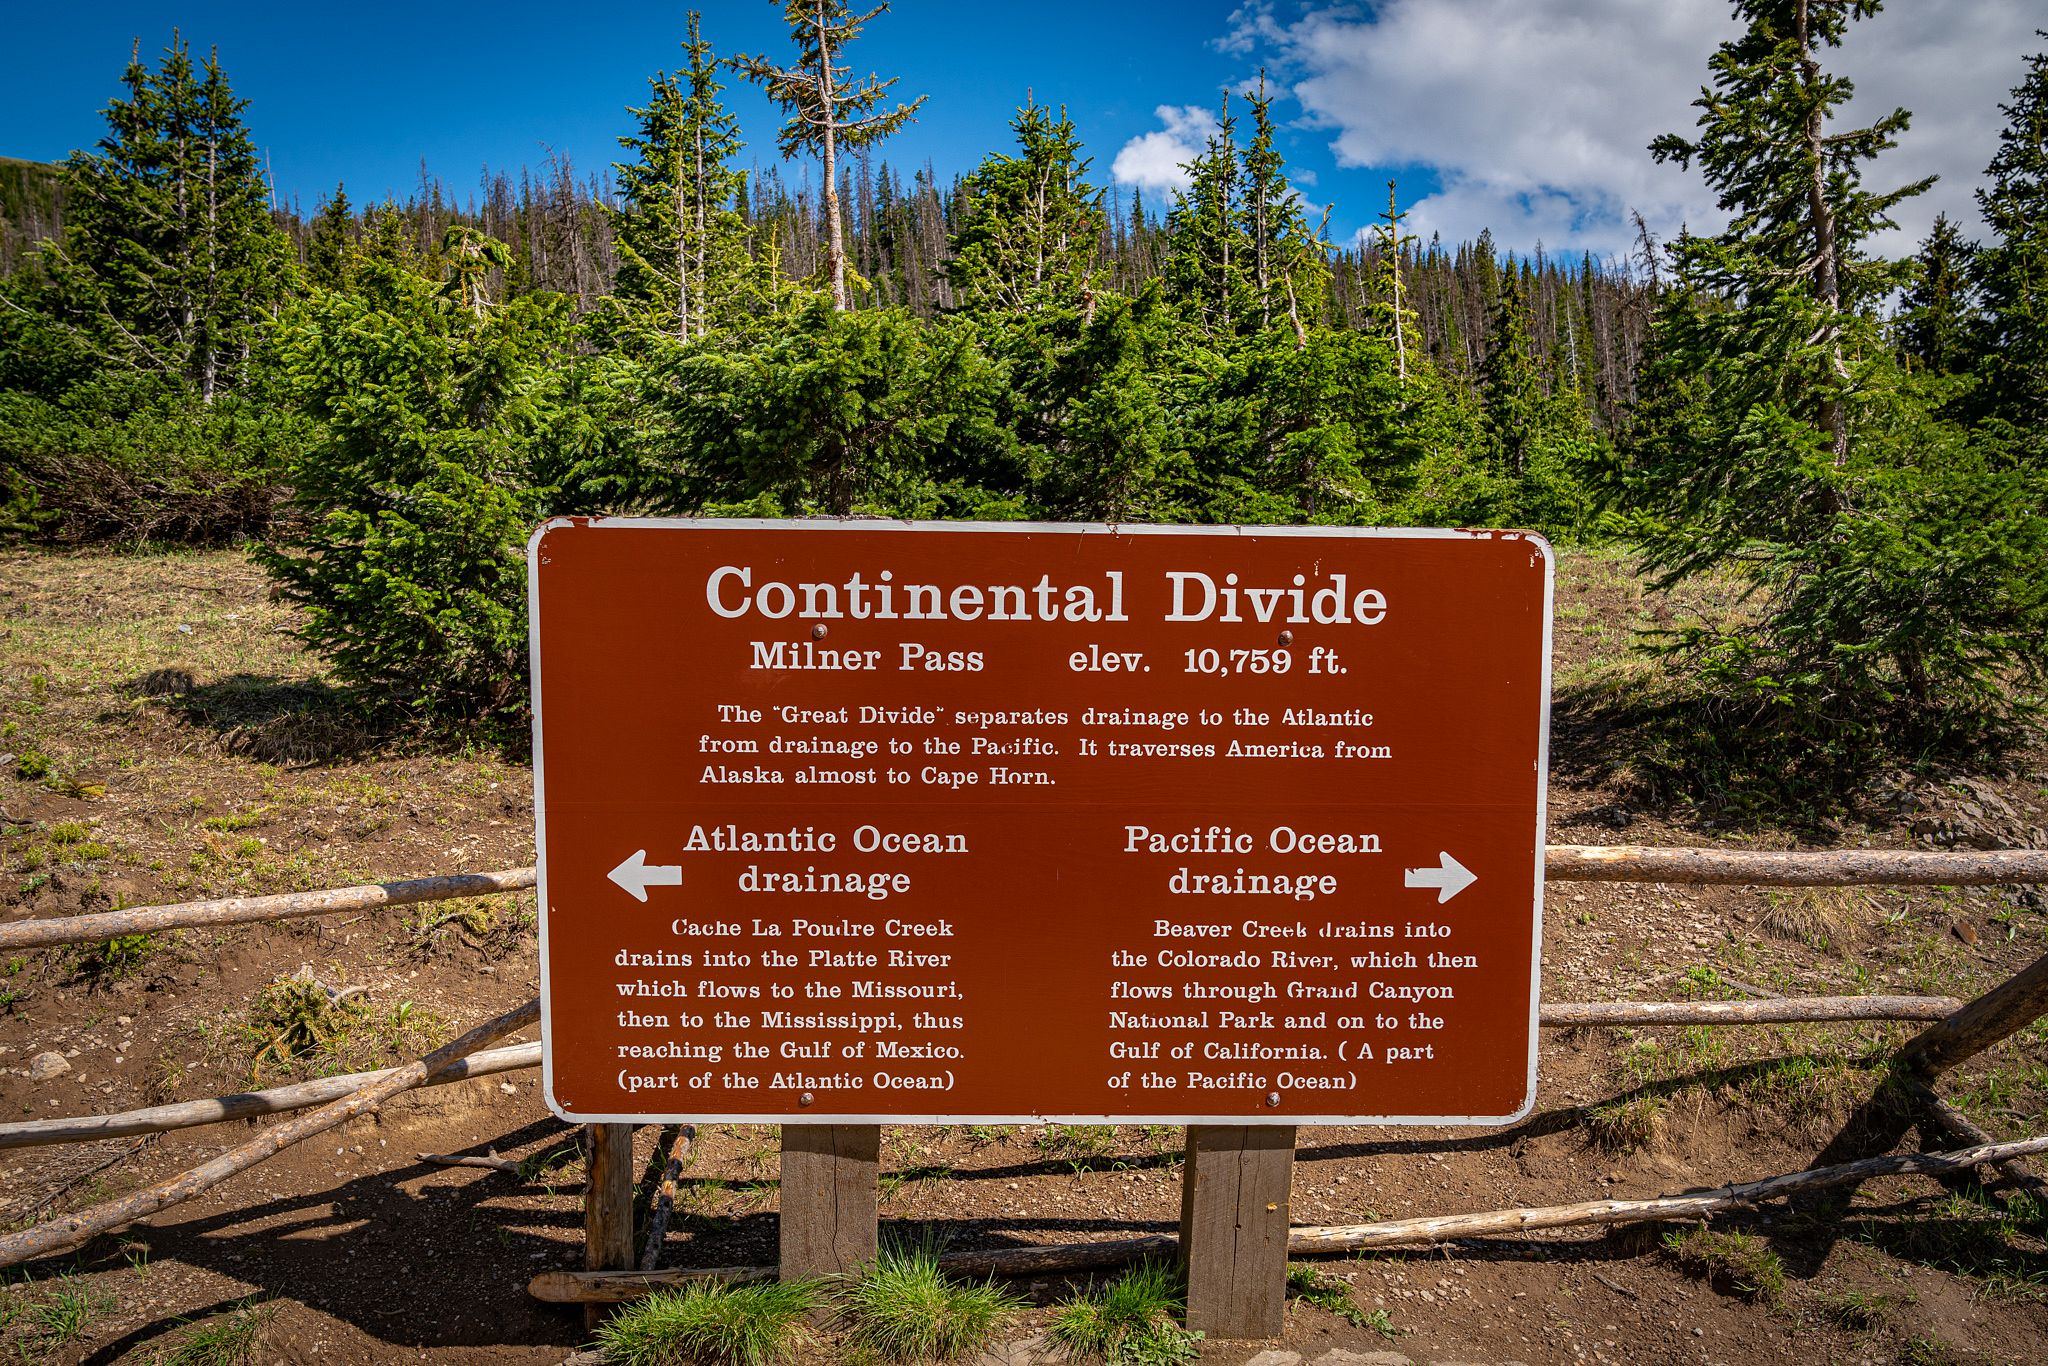 Continental Divide